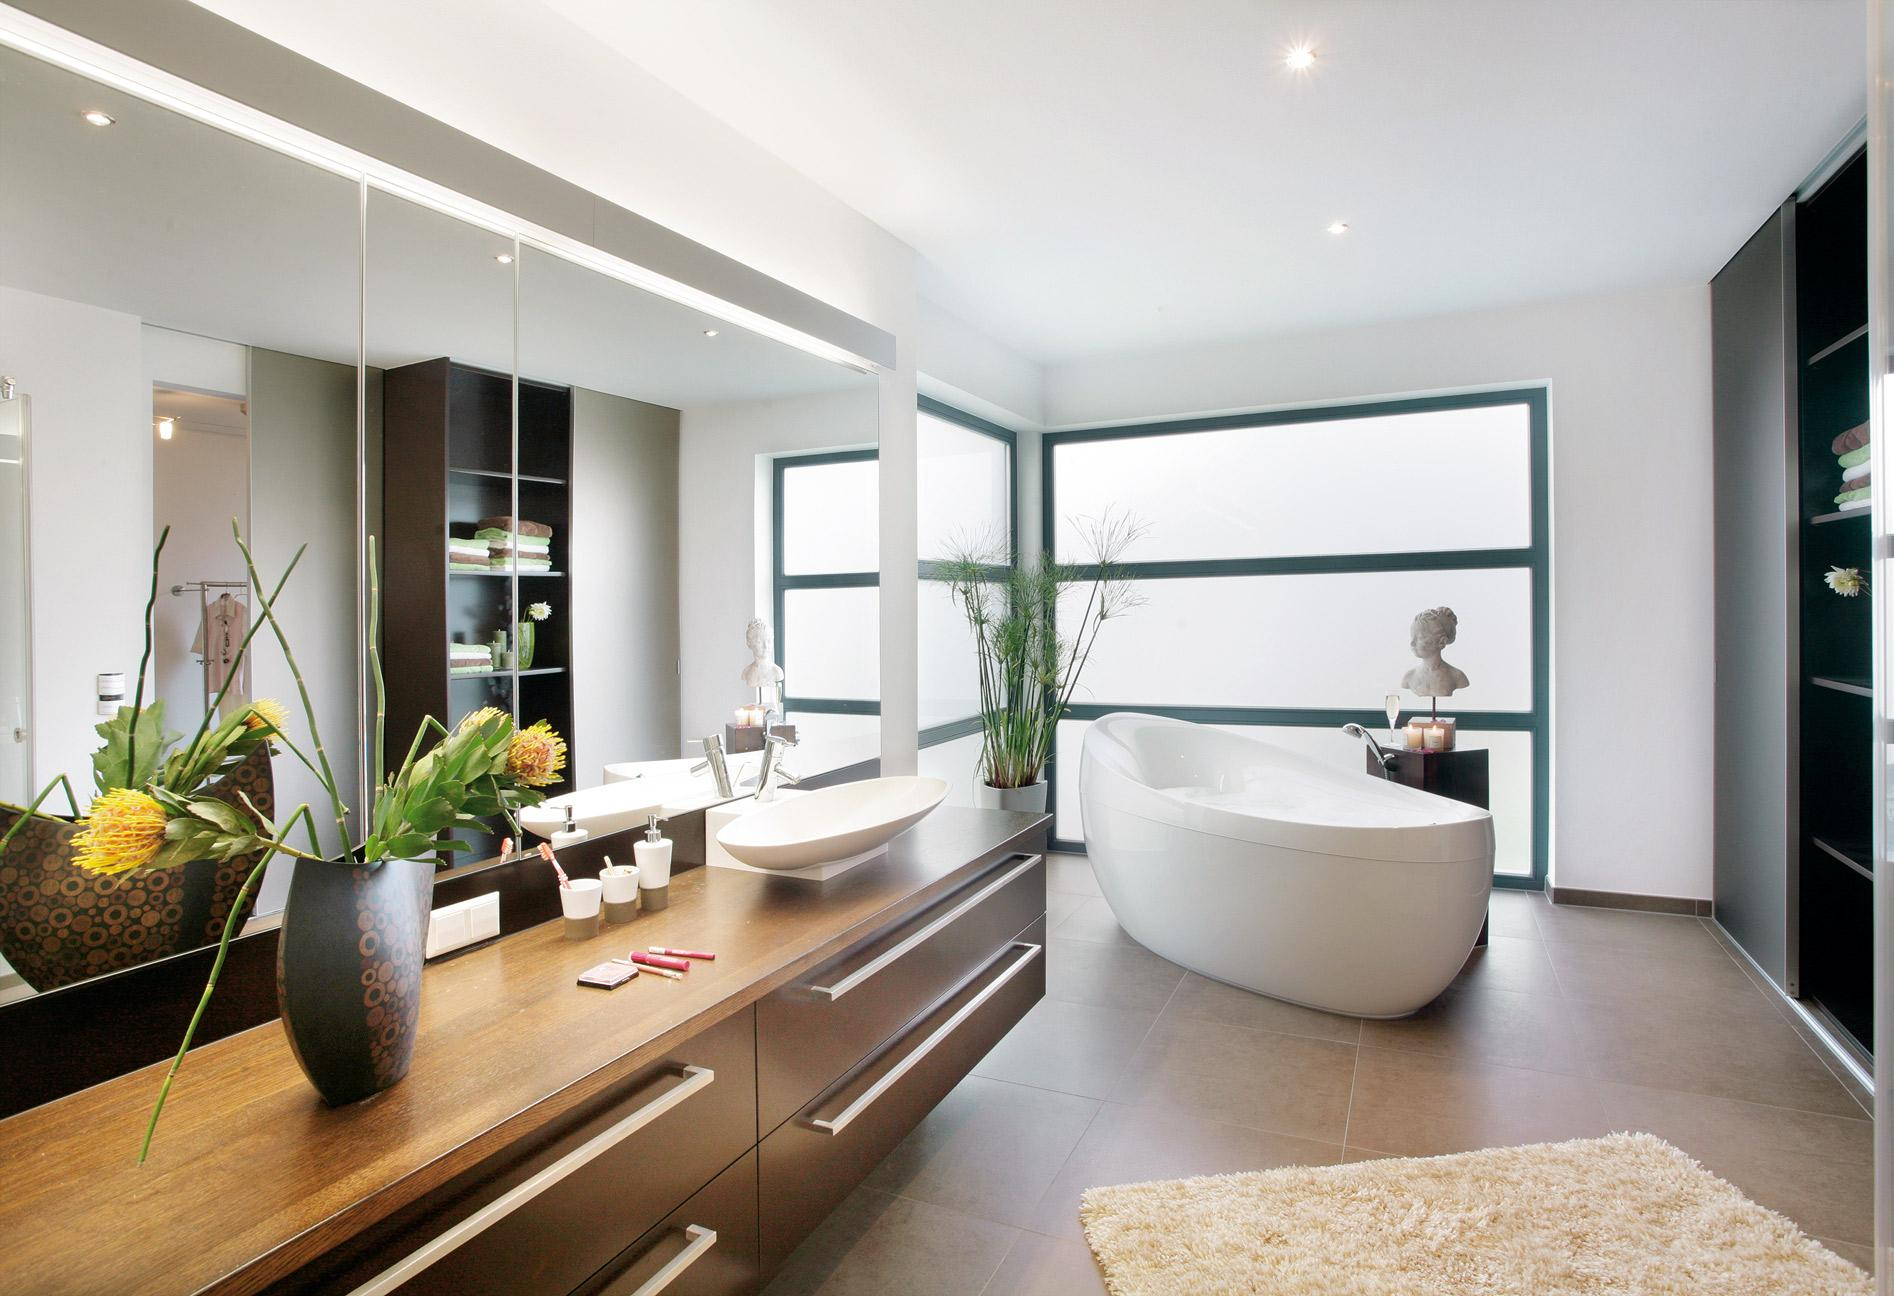 High quality bathroom with freestanding bath